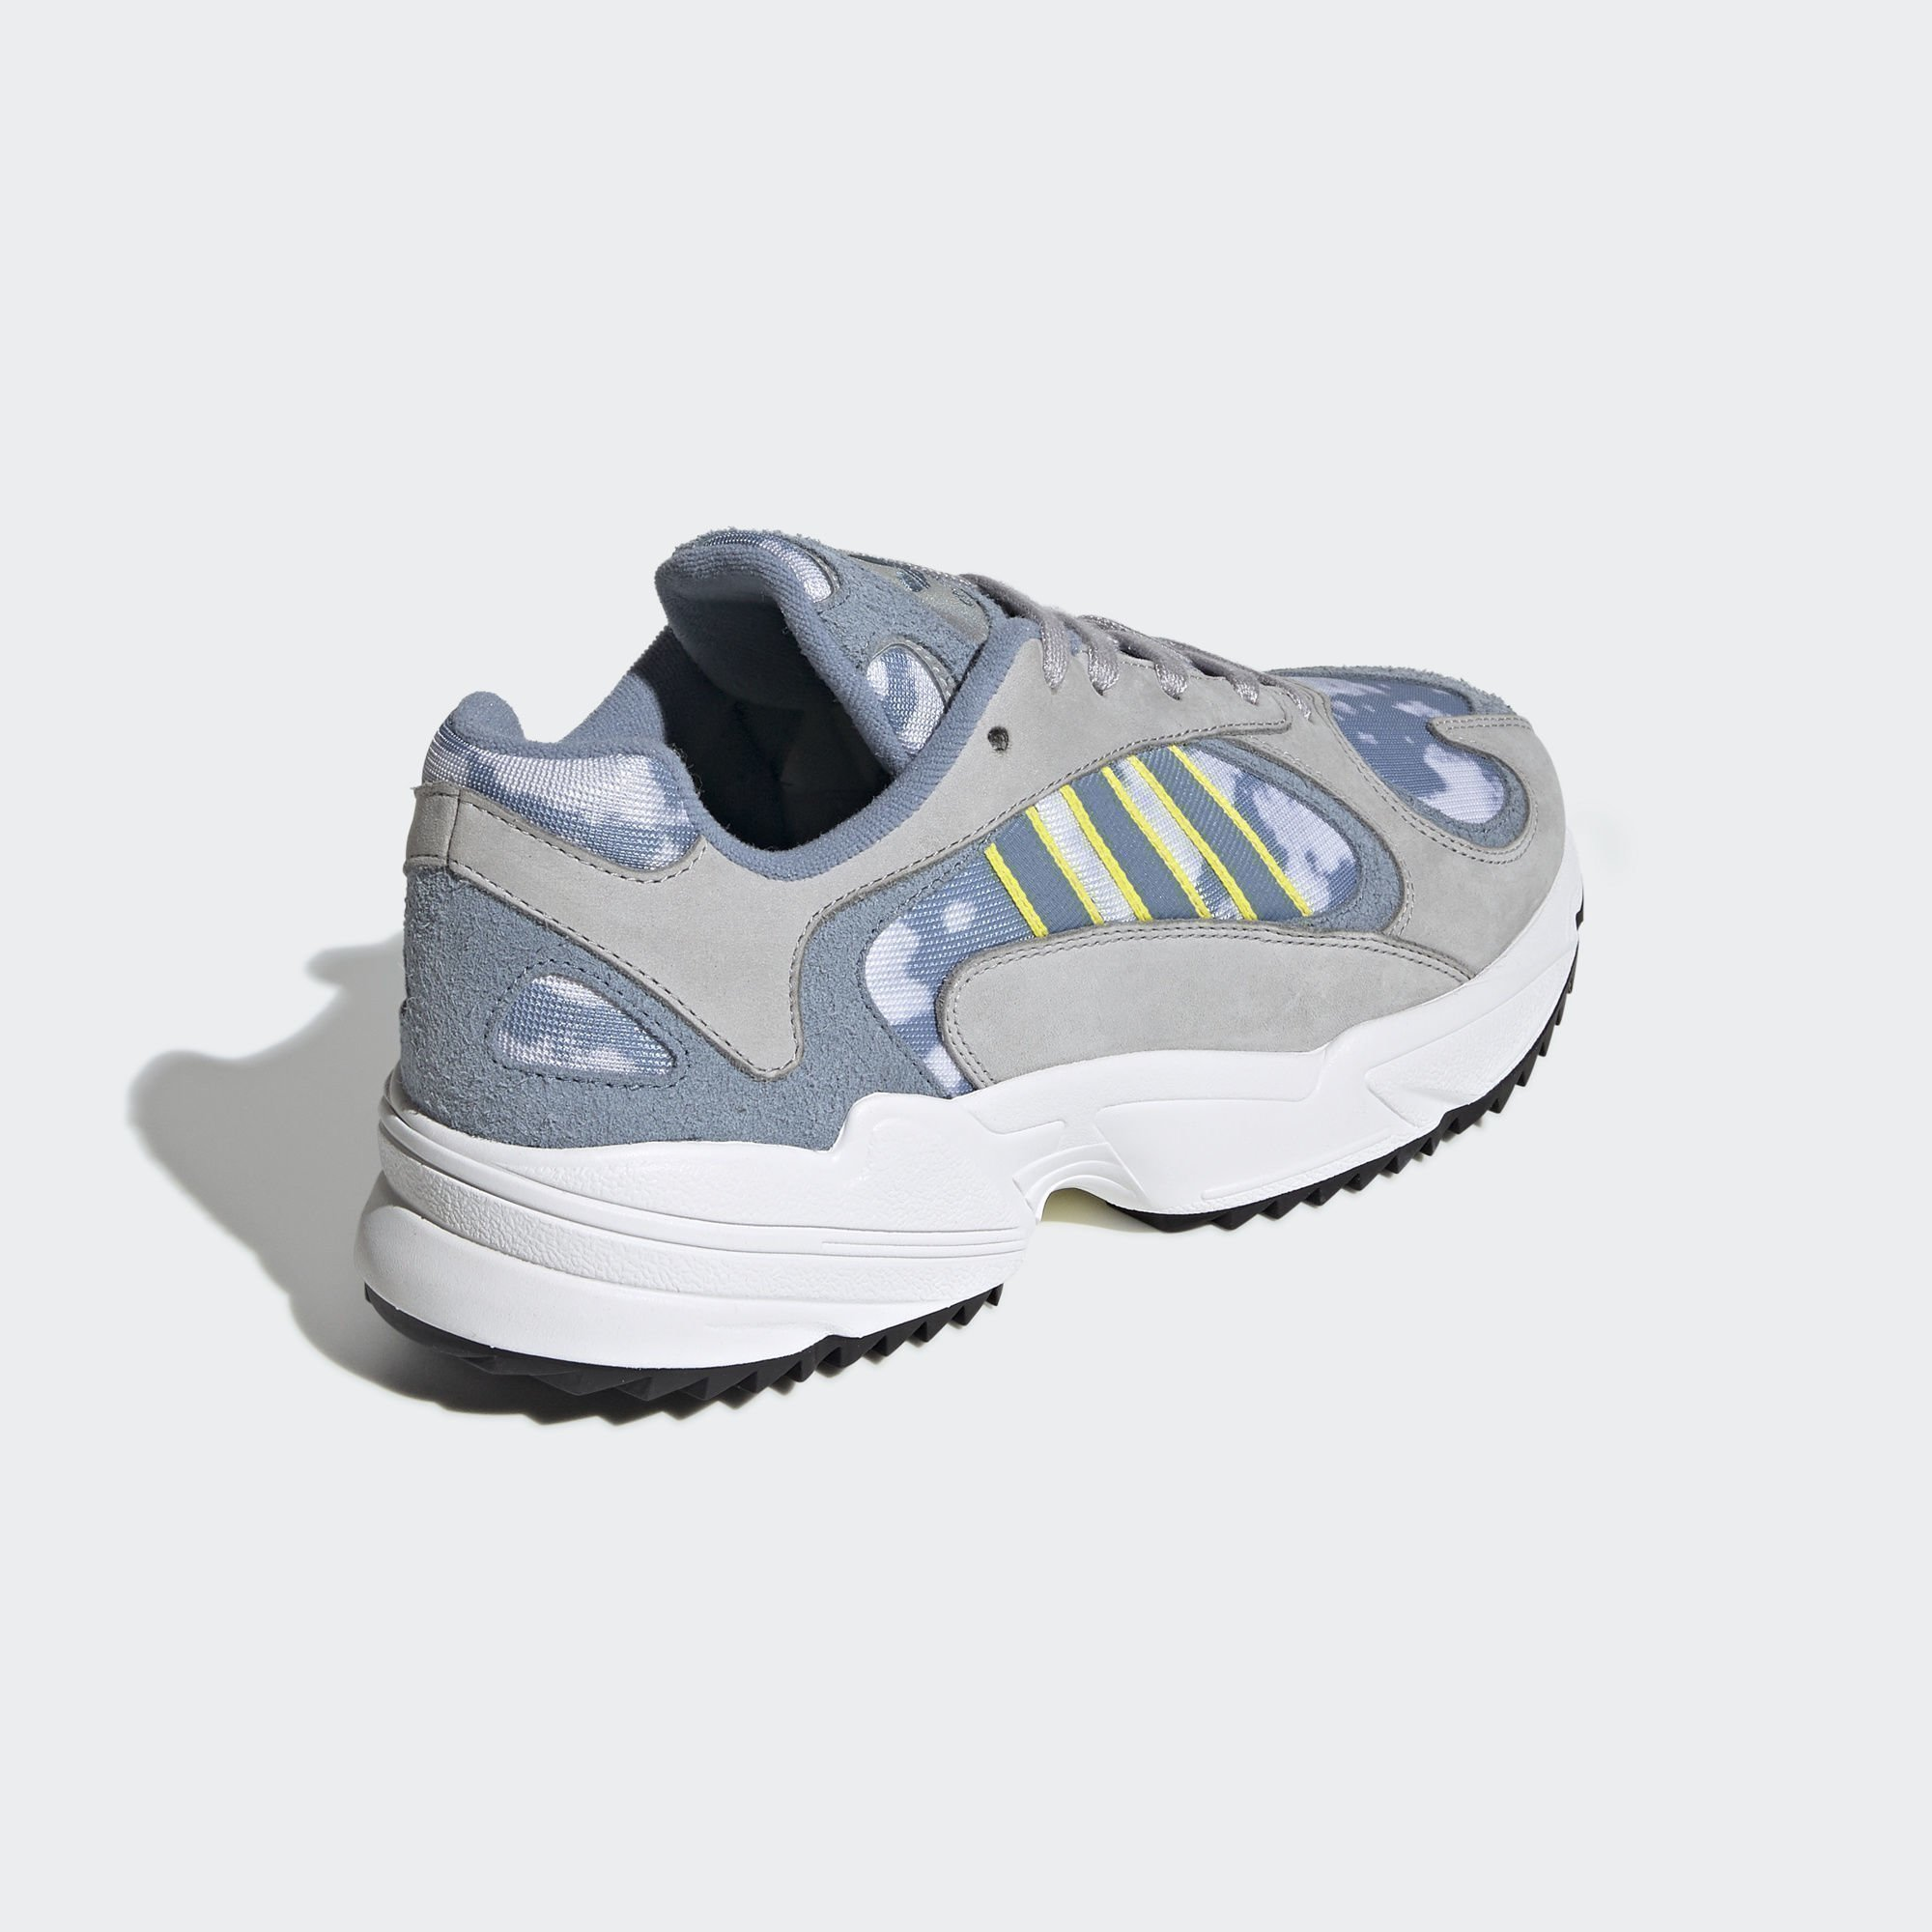 adidas Yung-1 'In The Sky' (EF2778)